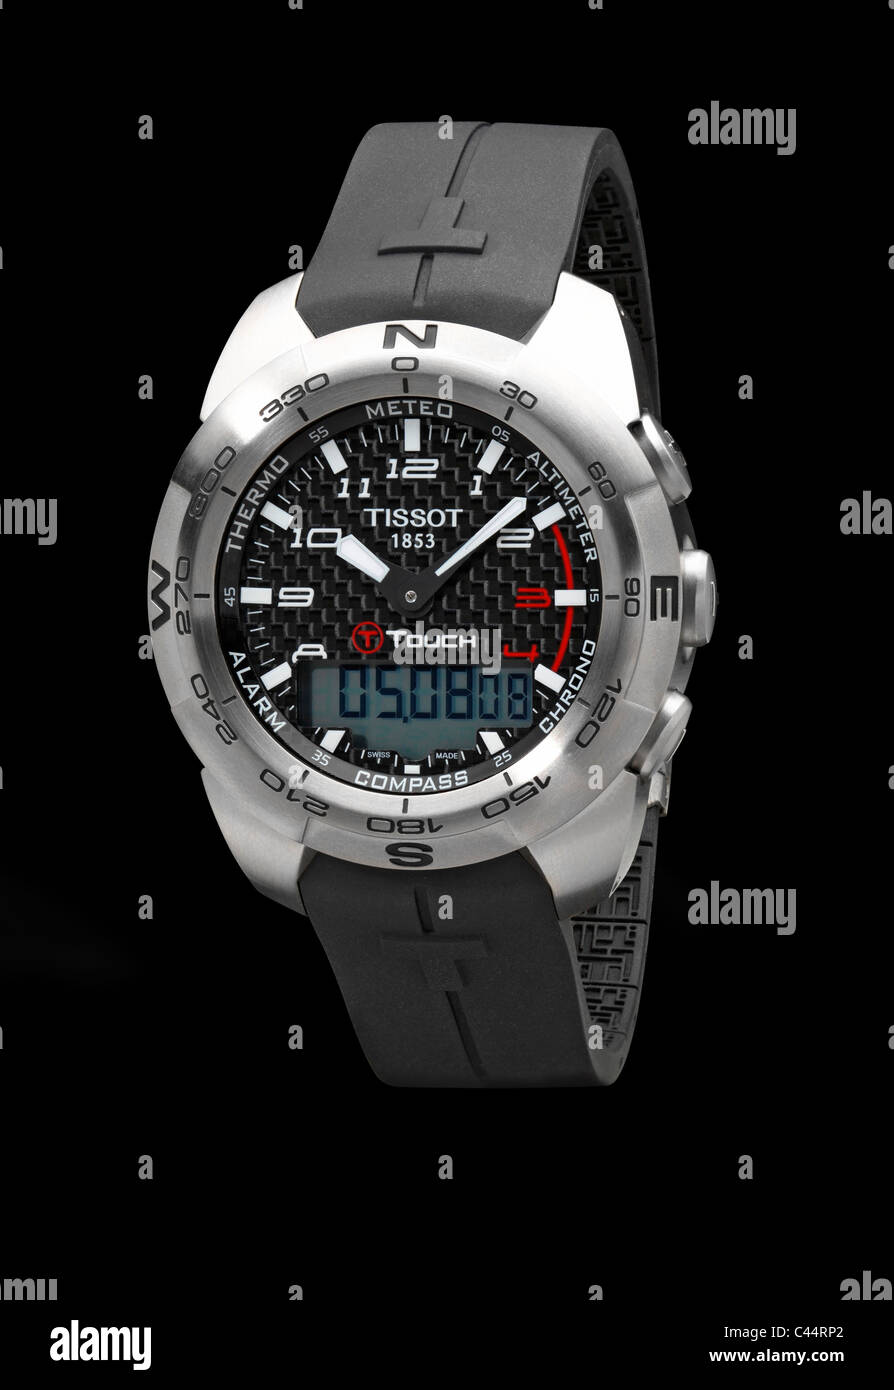 Tissot touch mens digital and analogue watch on black background Stock Photo